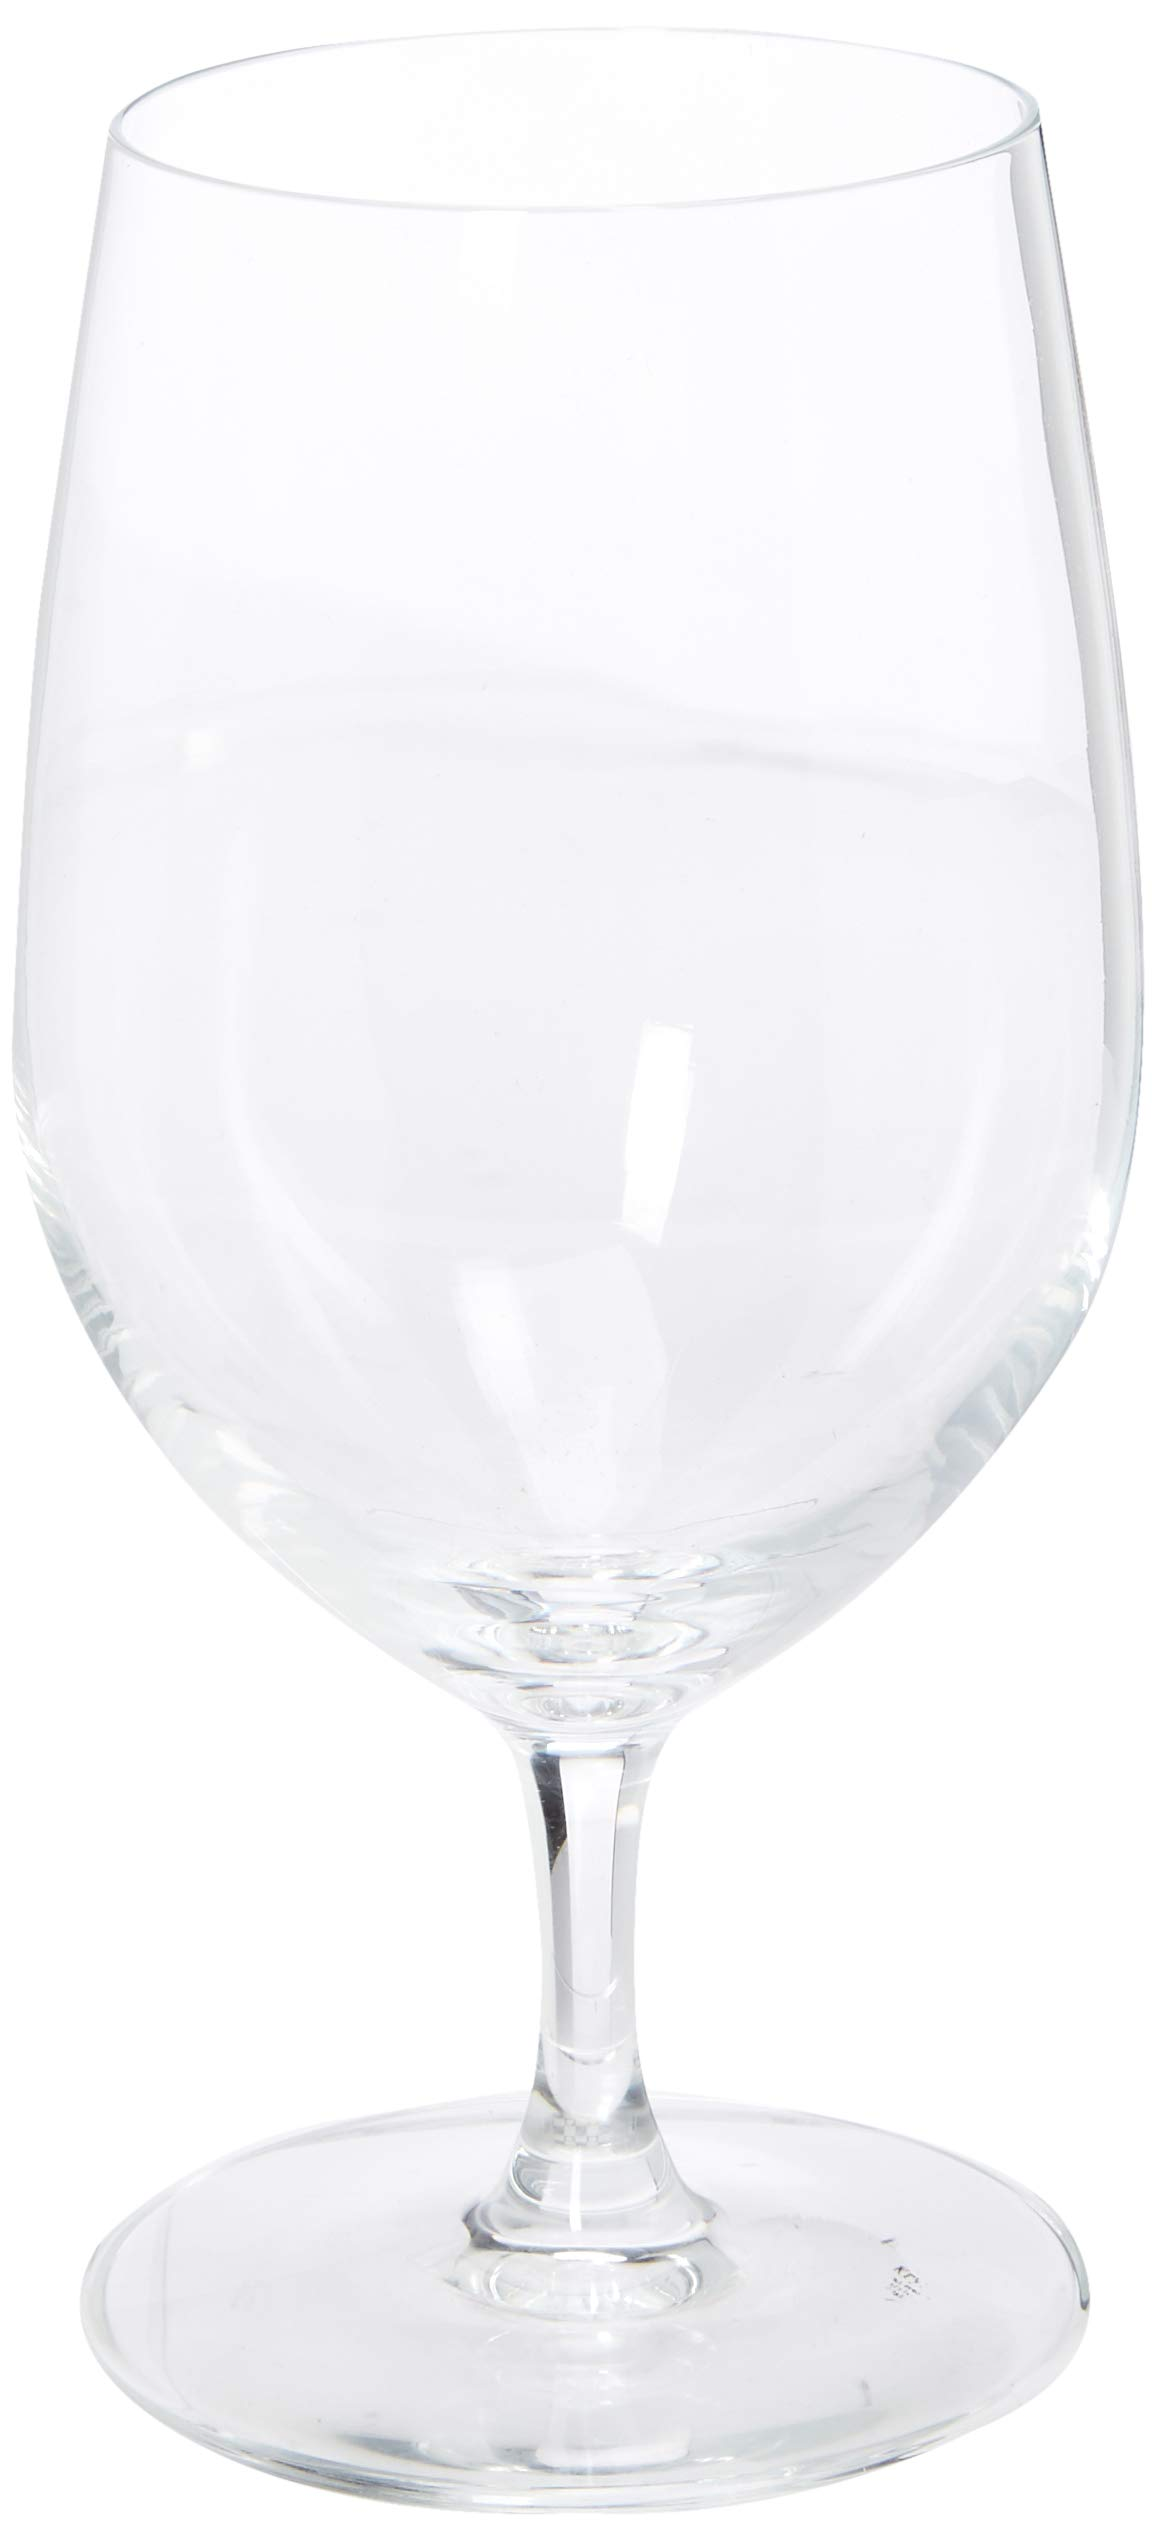 Chef & Sommelier L9237 Domaine 14 Ounce Stemmed Iced Tea Glass, Set of 6, 14 oz, Clear